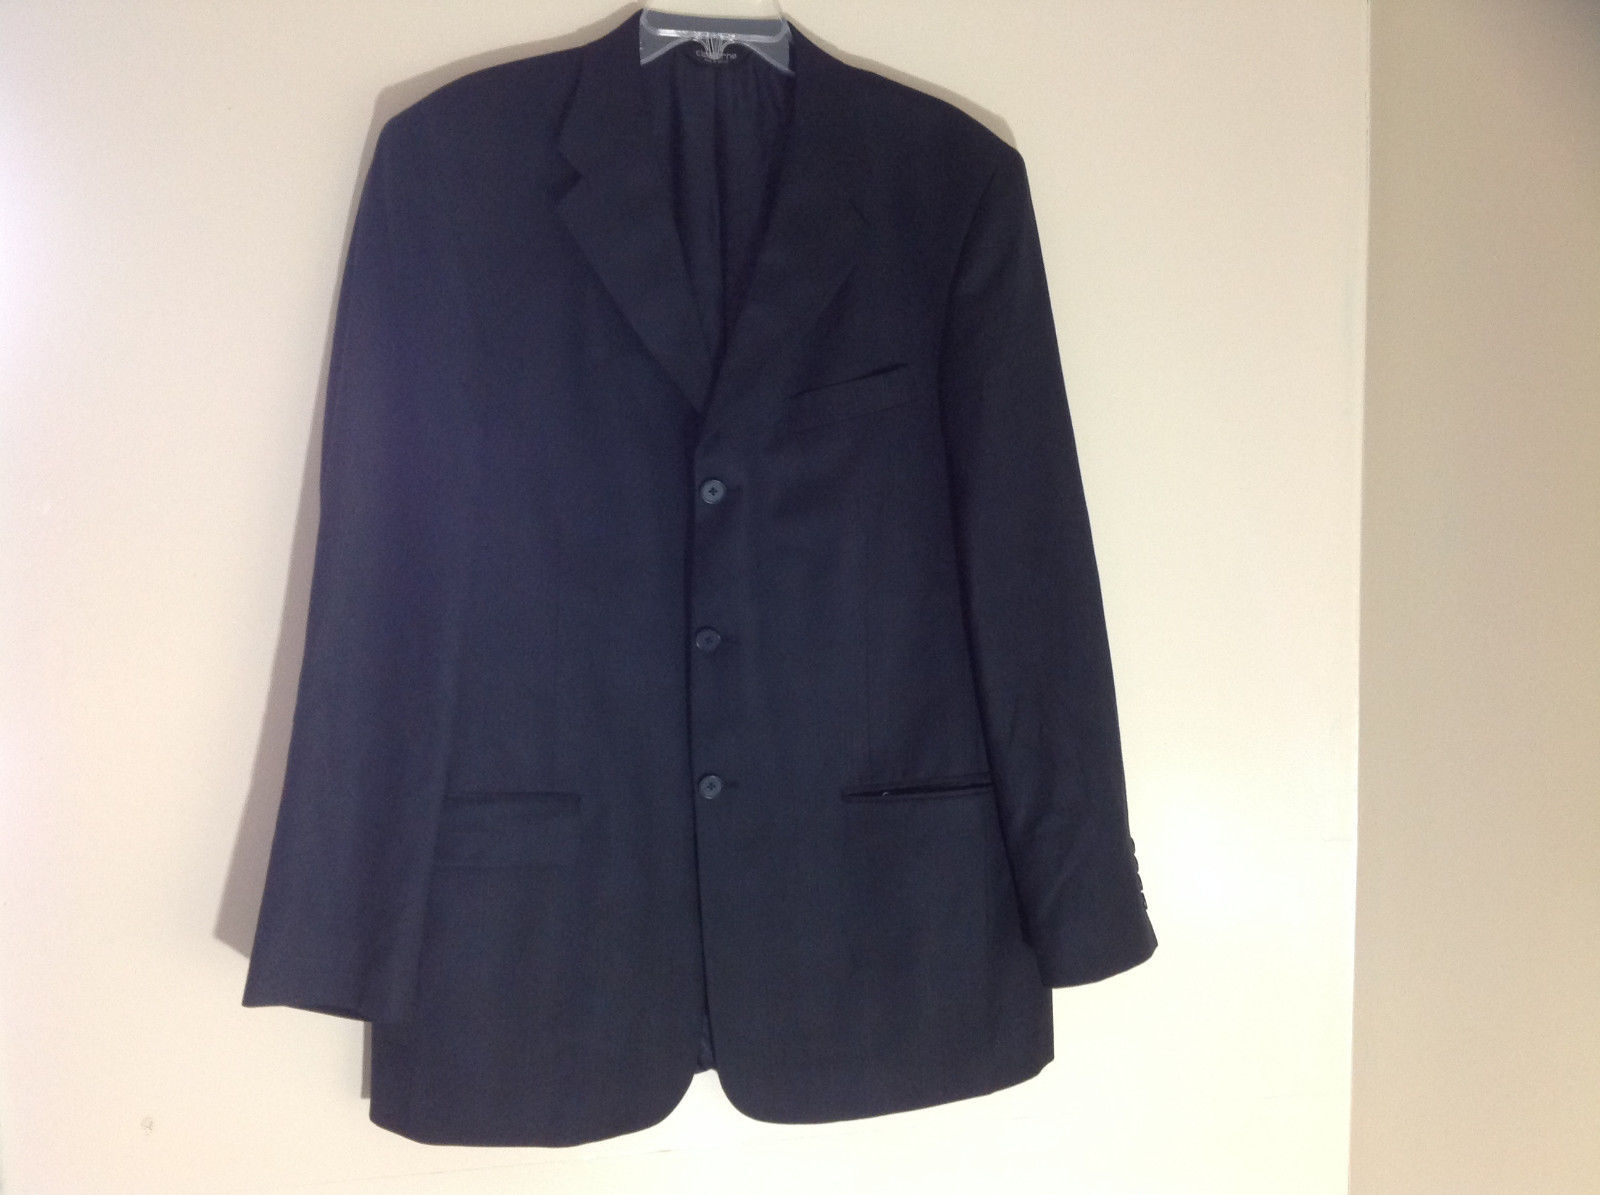 Claiborne Black Button Up Suit Jacket 3 Pockets on Front Size 42 Large